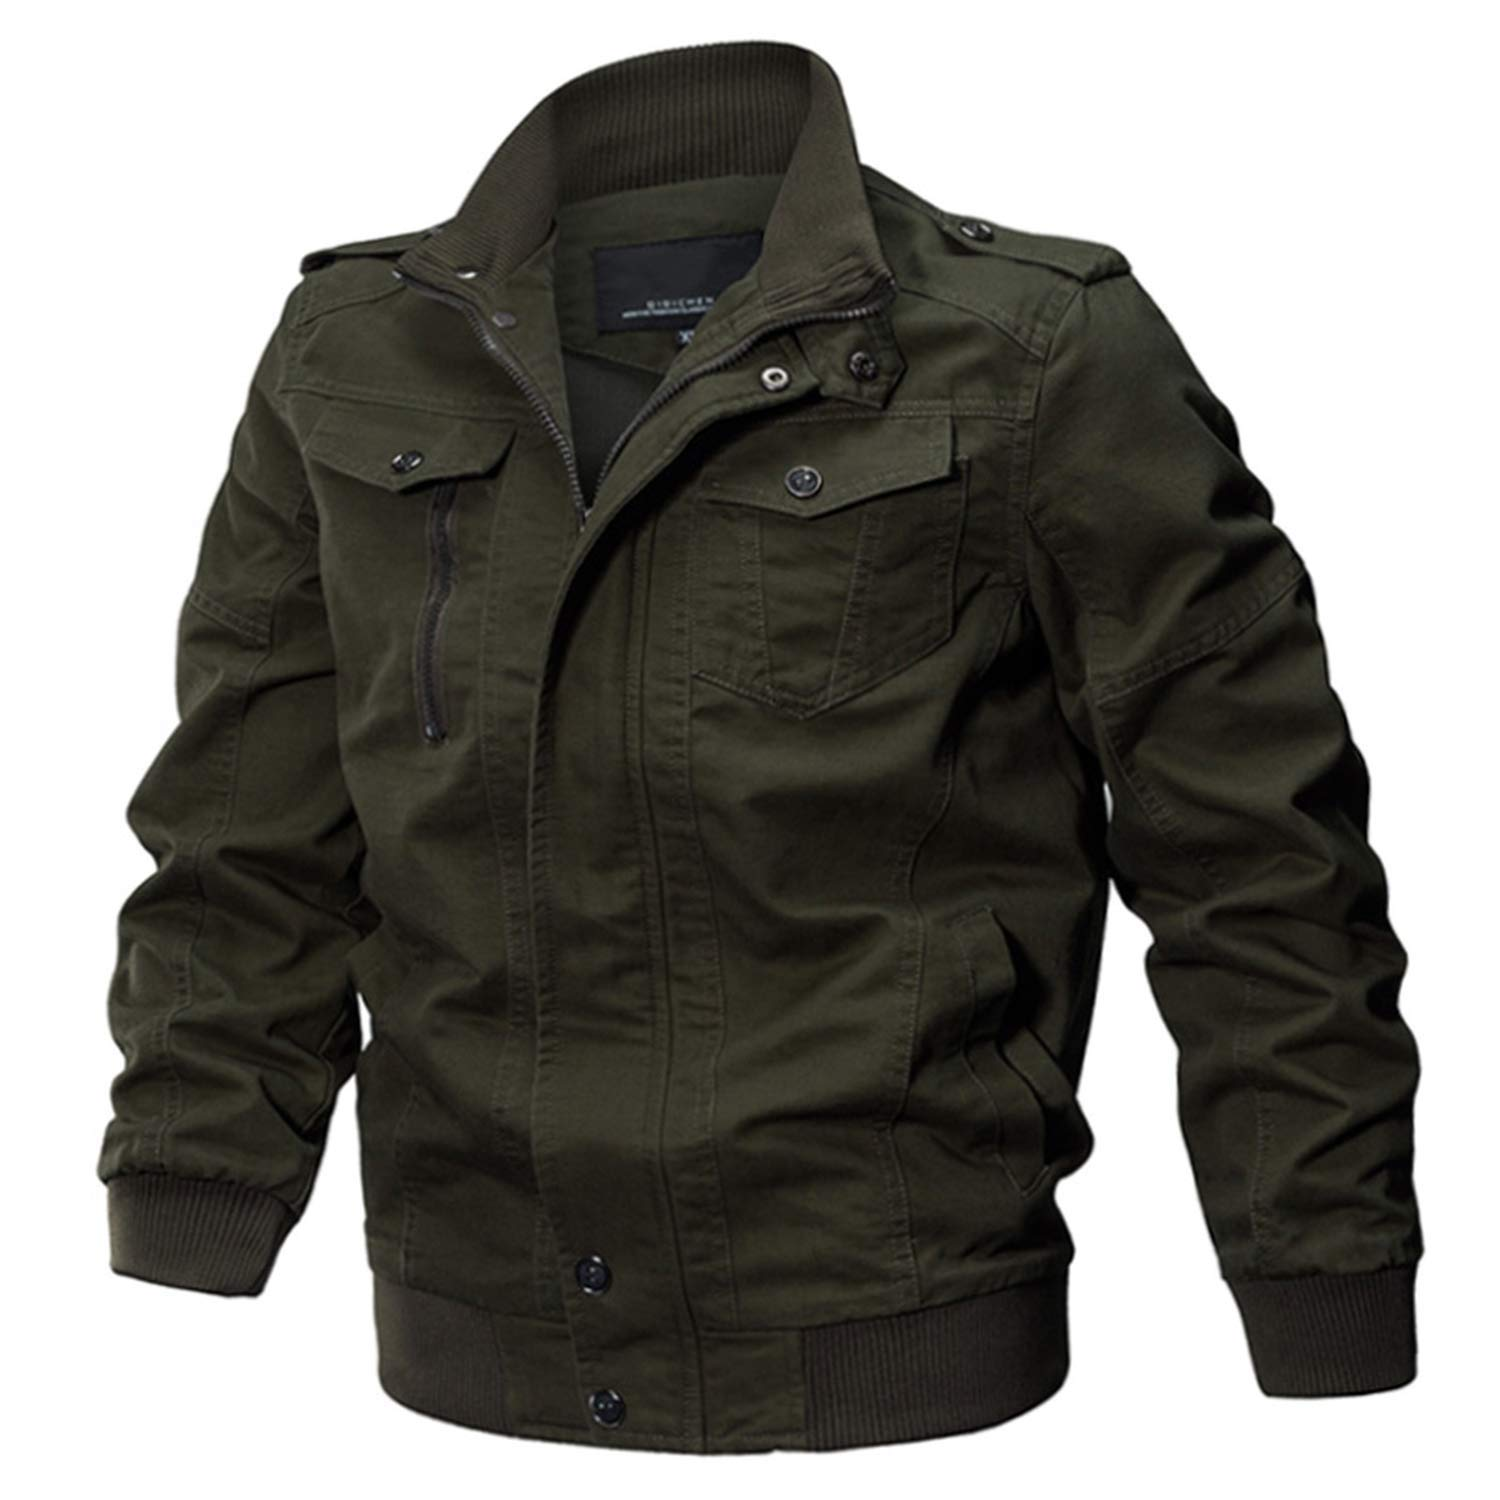 Cheap Military Surplus >> Cheap Army Surplus Jacket Find Army Surplus Jacket Deals On Line At